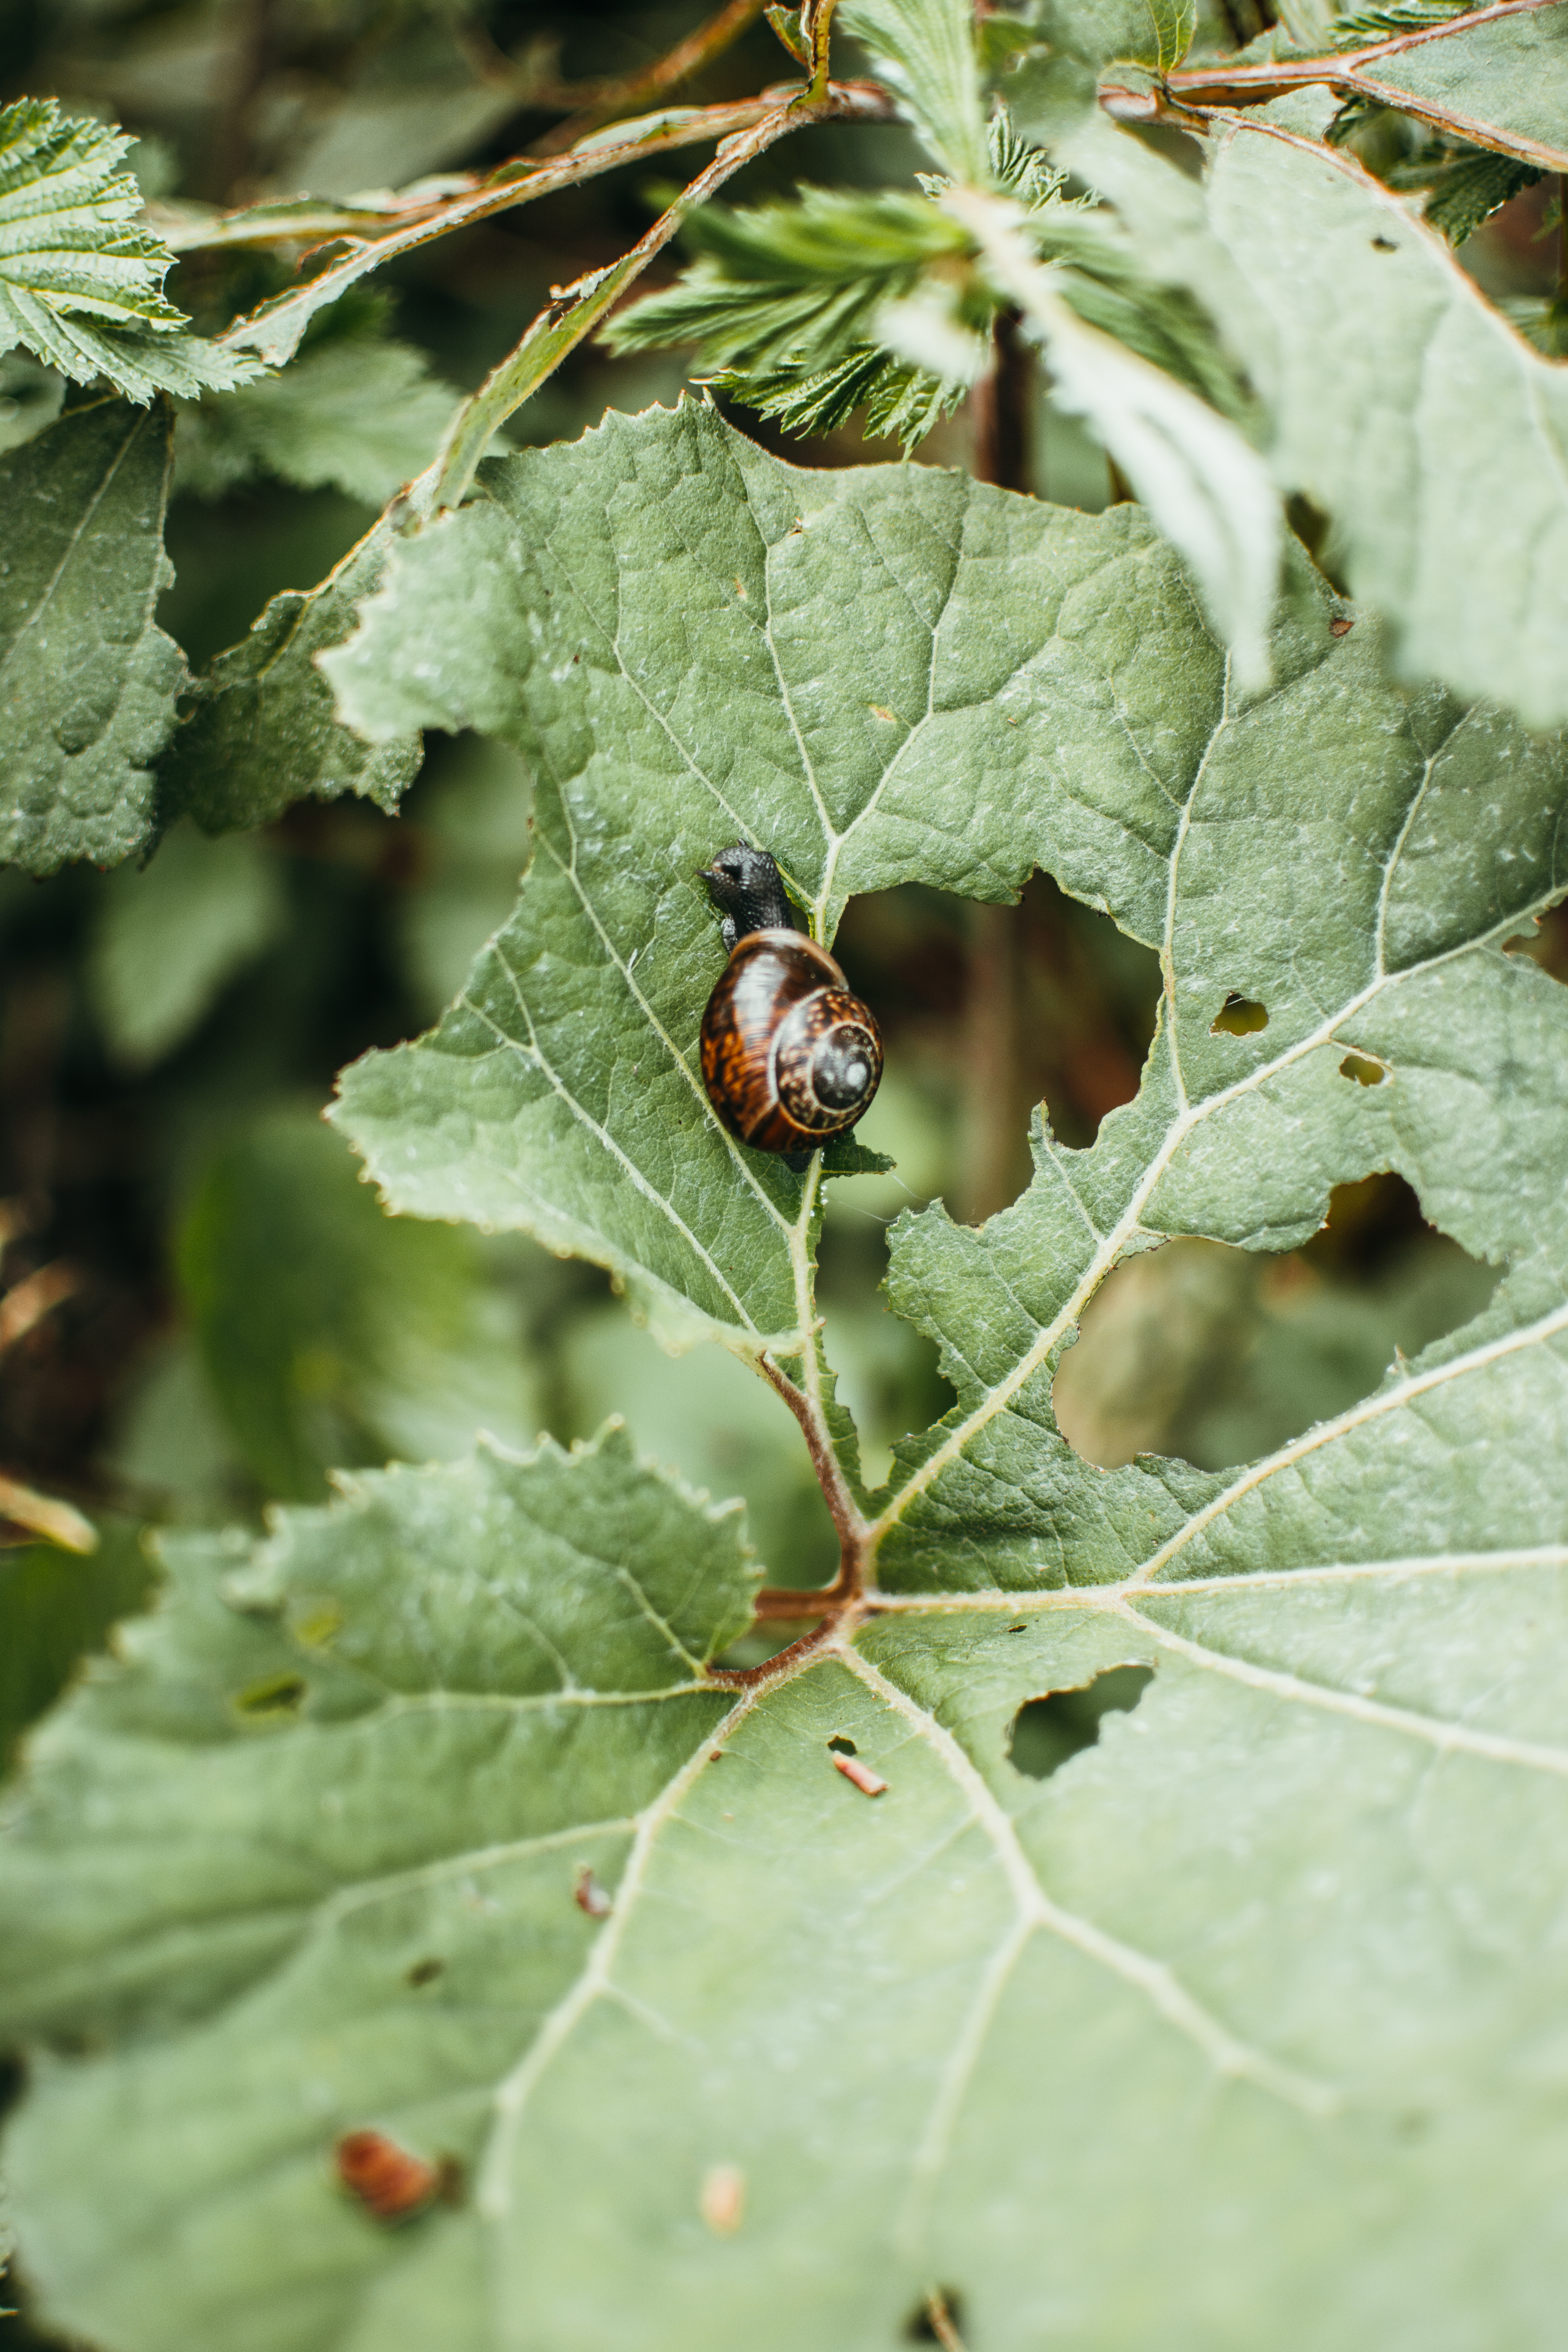 Close-Up Photo of Snail on Leaf Plant